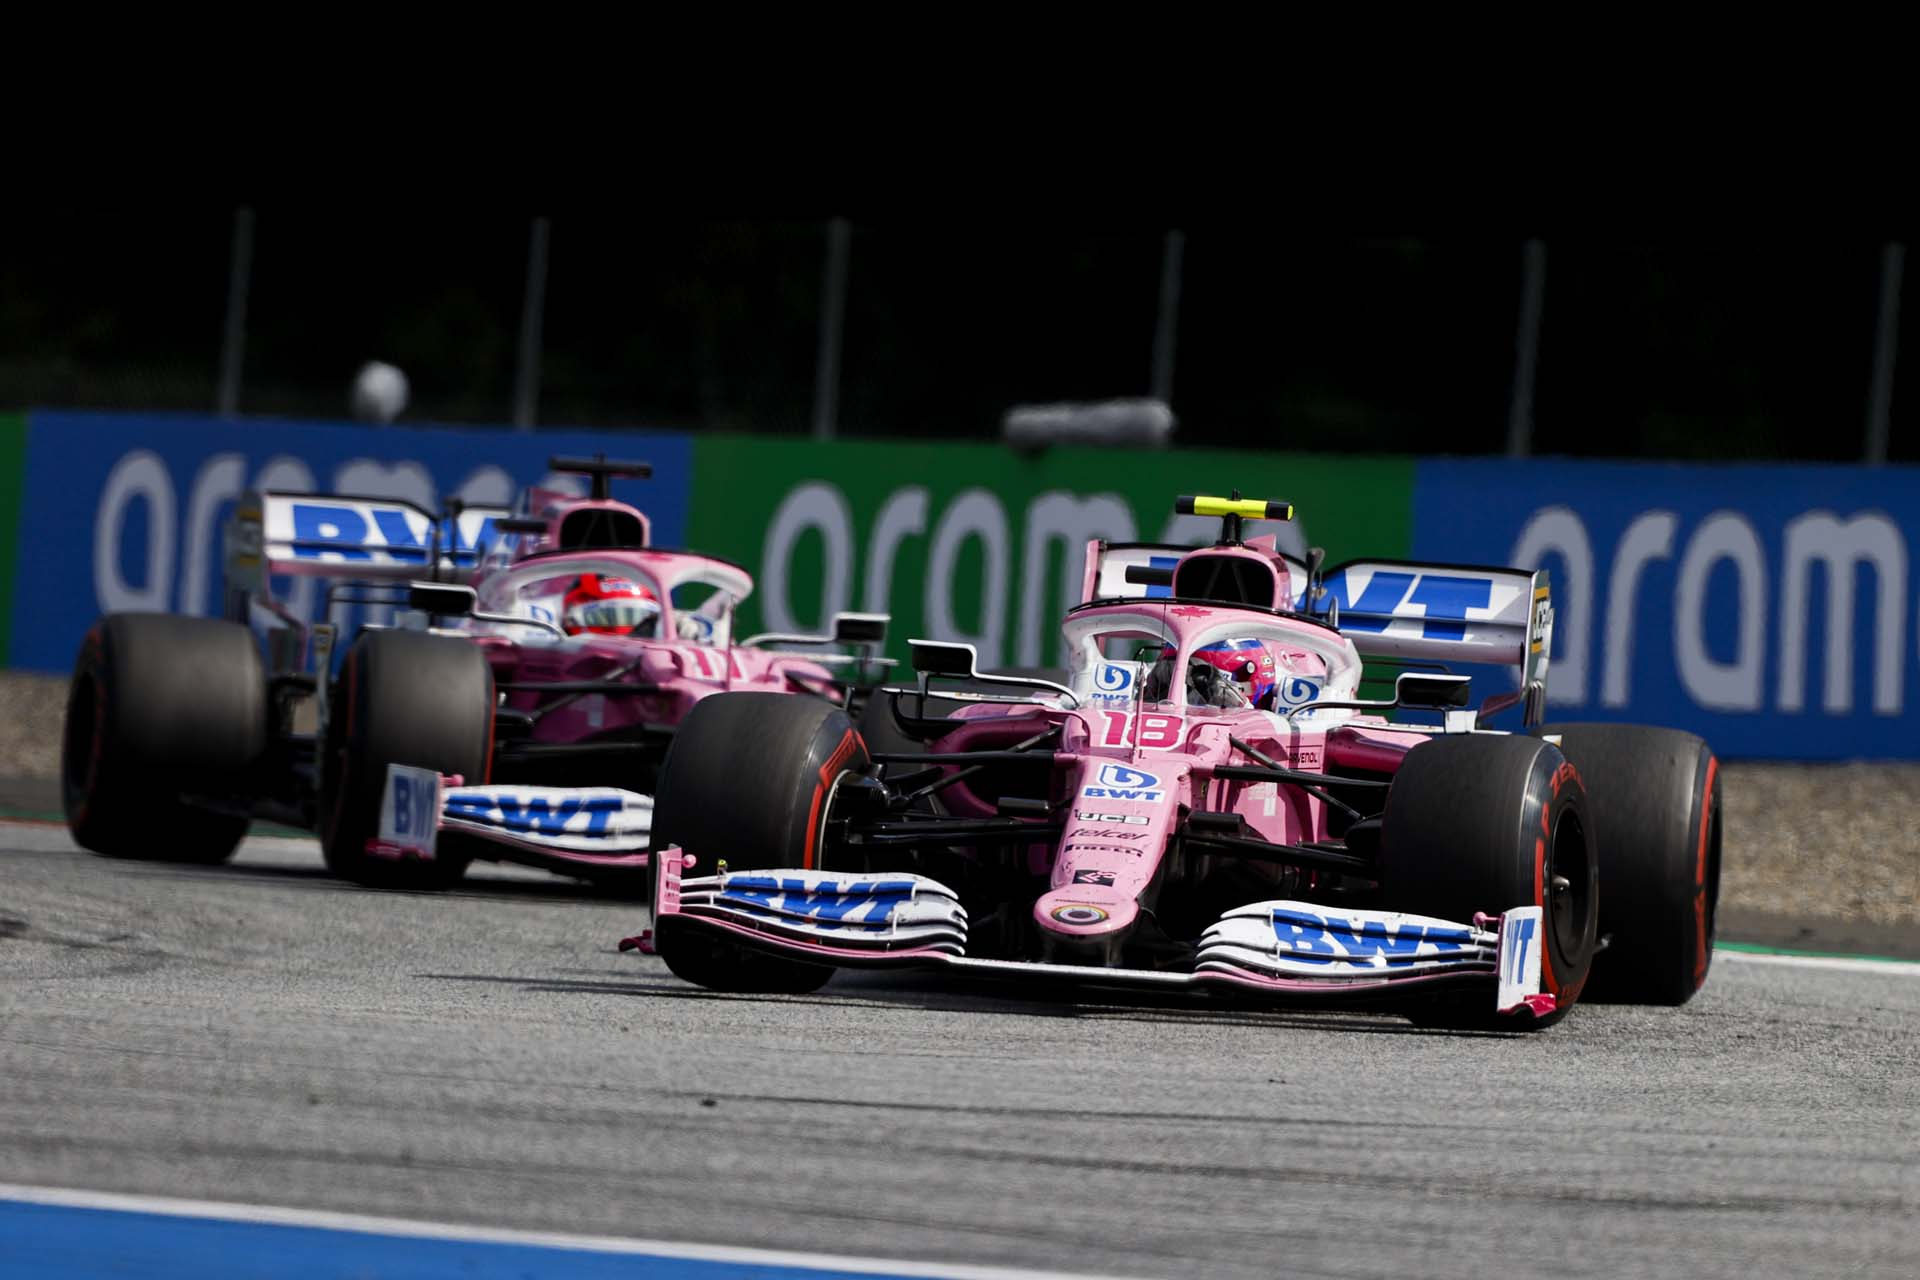 Lance Stroll, Racing Point RP20 and Sergio Perez, Racing Point RP20